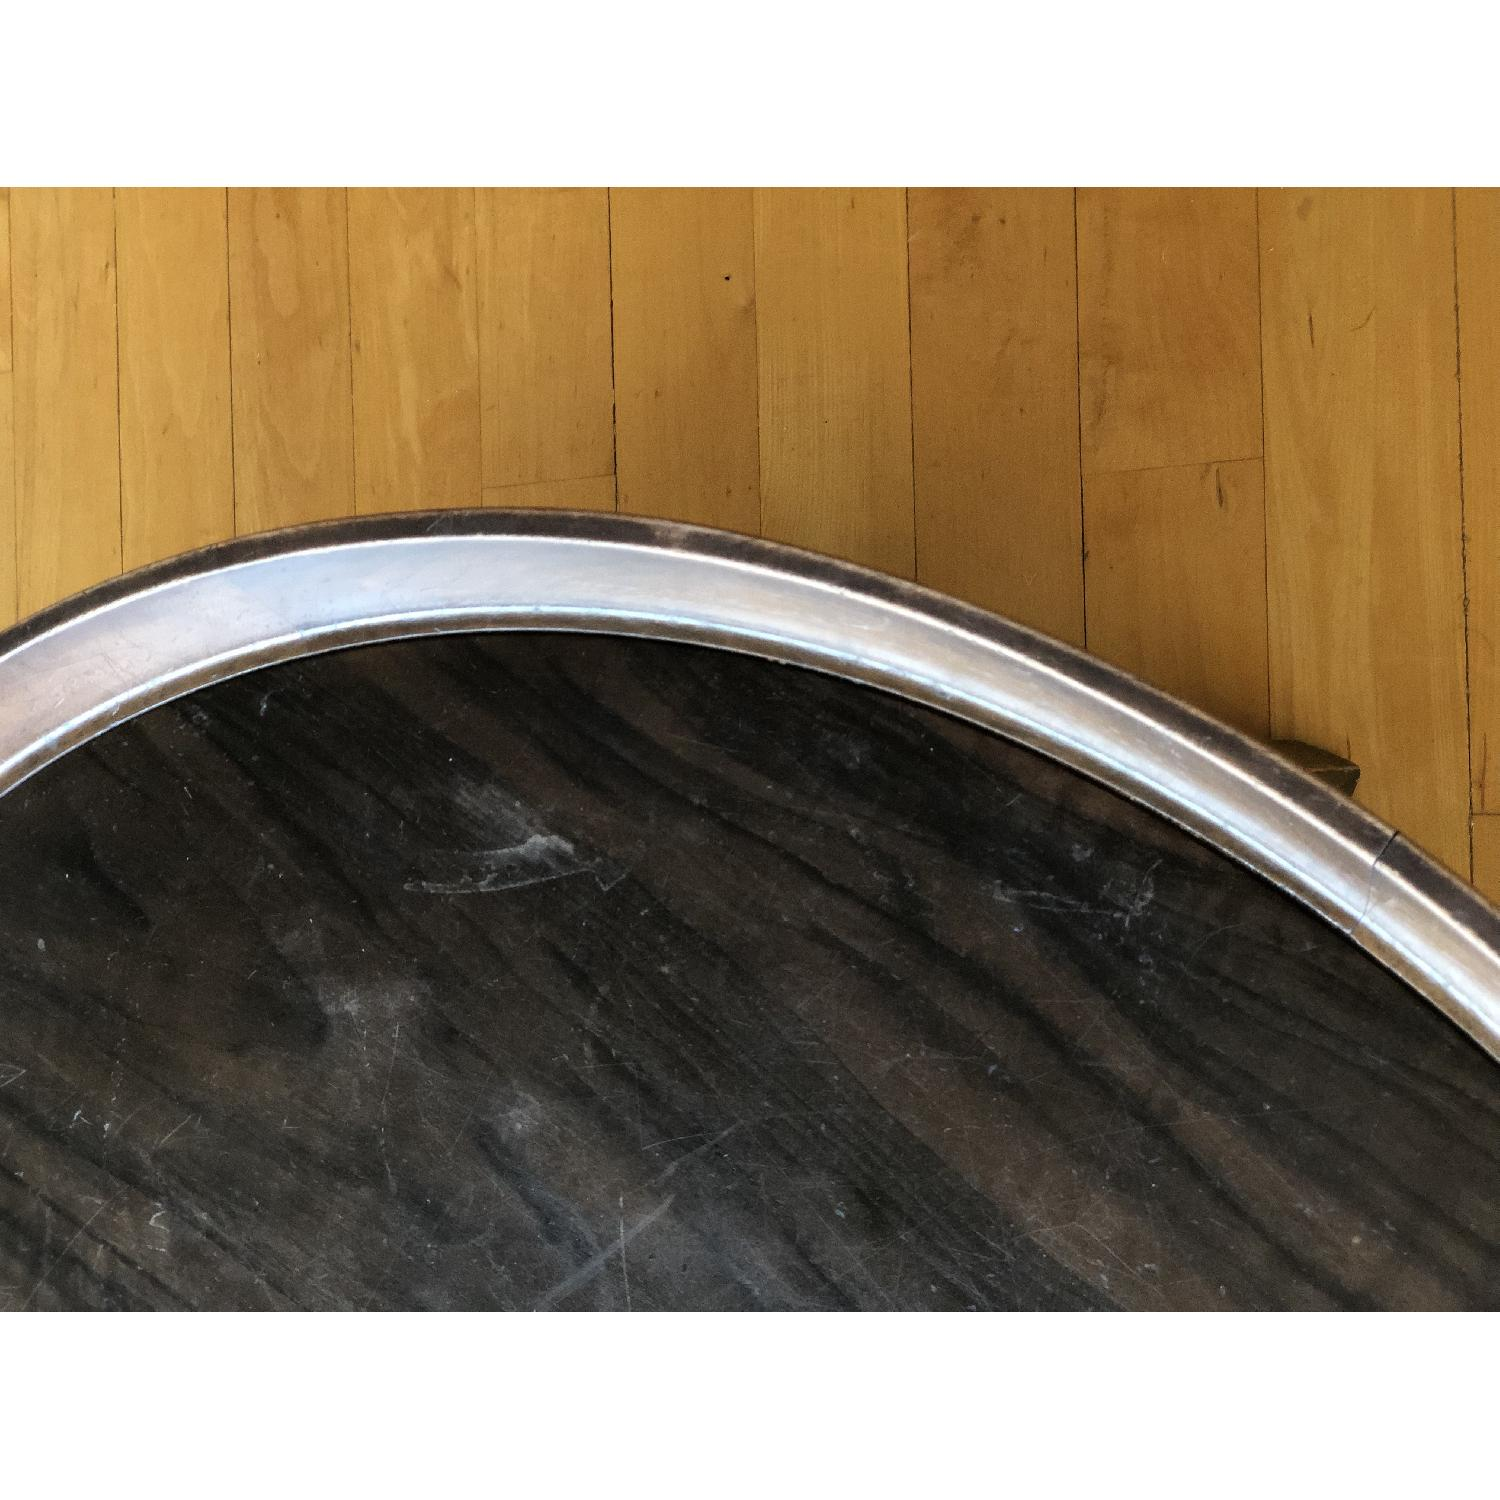 Antique Solid Wood Round Coffee Table - image-13